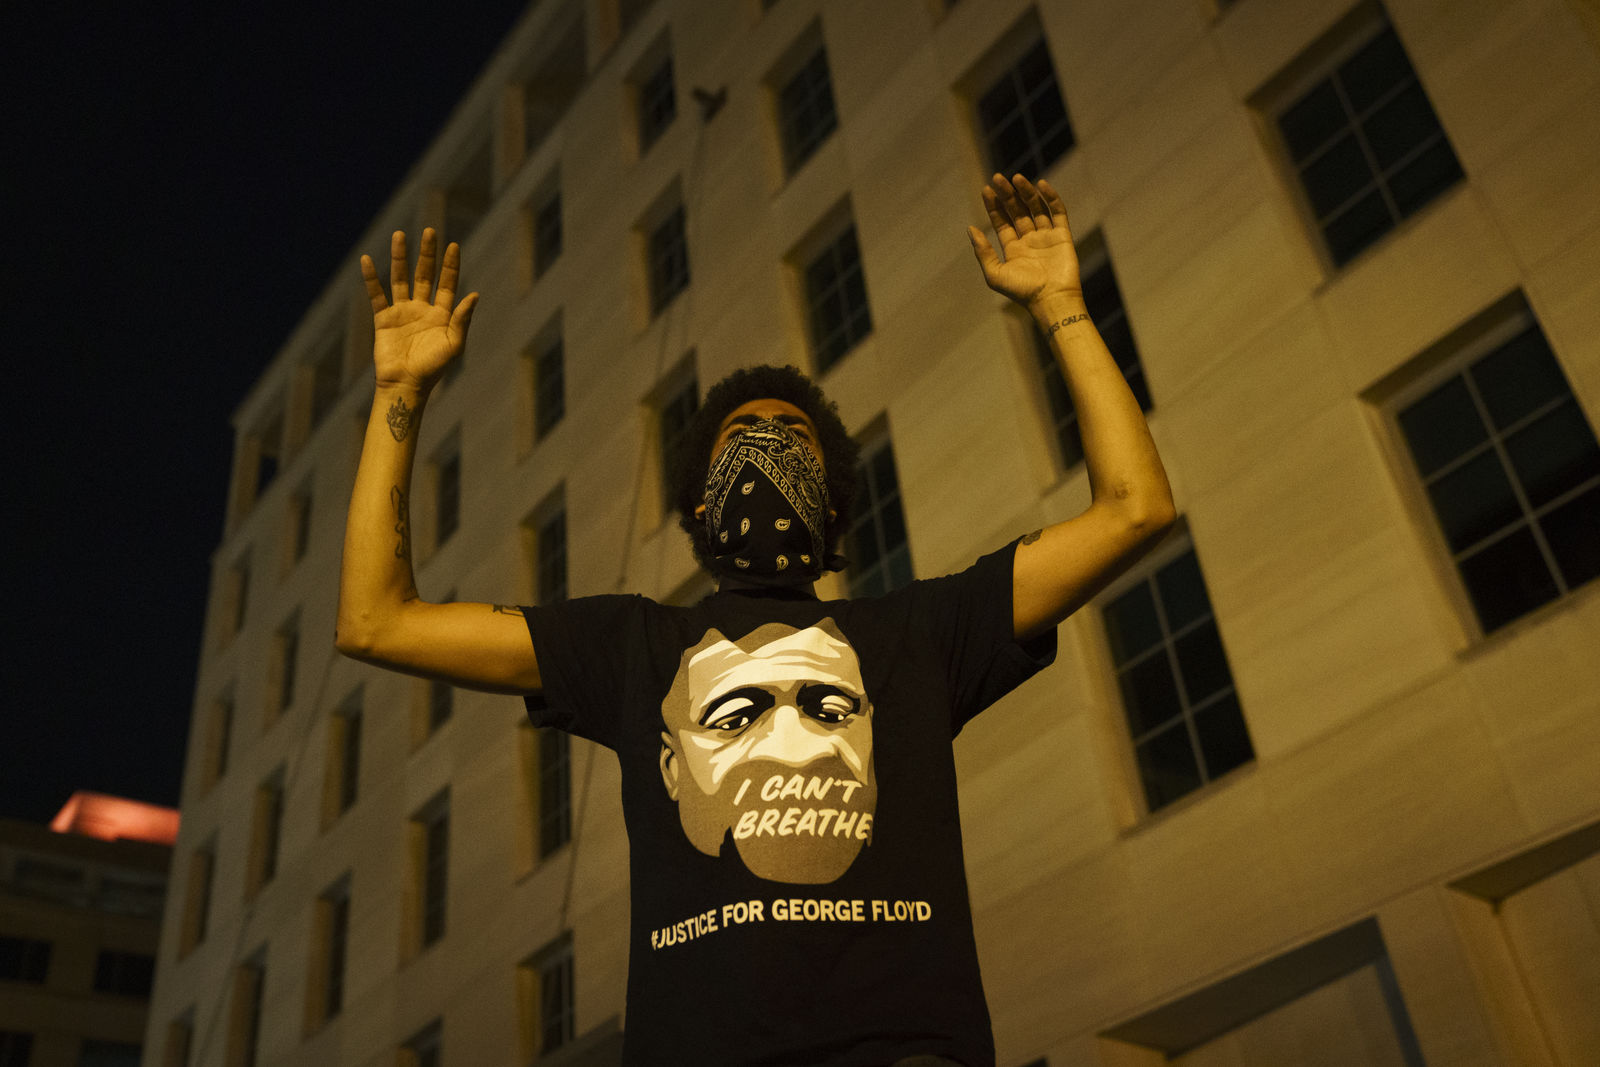 WASHINGTON, DC - JUNE 03: A demonstrator holds his hands up in protest near Lafayette Park and the White House on June 3, 2020 in Washington, DC. Protests in cities throughout the country continue in the wake of the death of George Floyd, a black man who was killed in police custody in Minneapolis on May 25. (Photo by Drew Angerer/Getty Images)